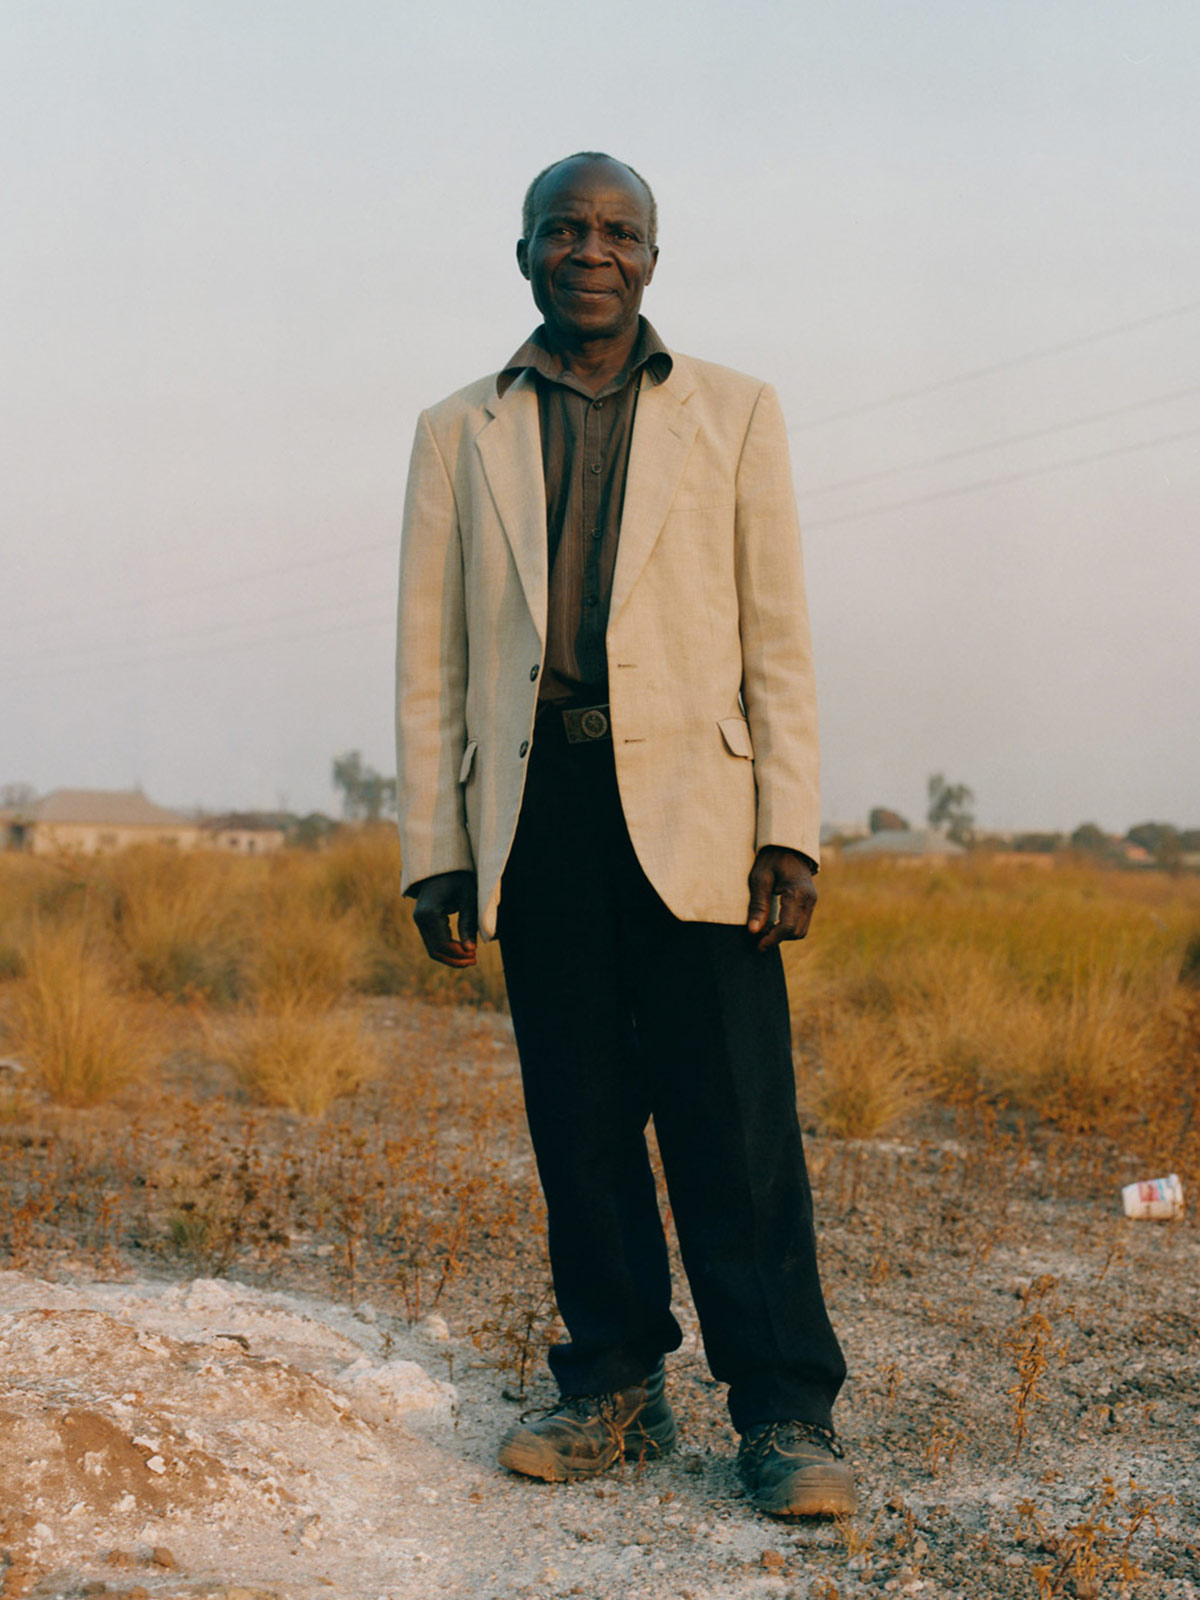 Kabwe, Zambia, where mining operations have destroyed the environment—and lives